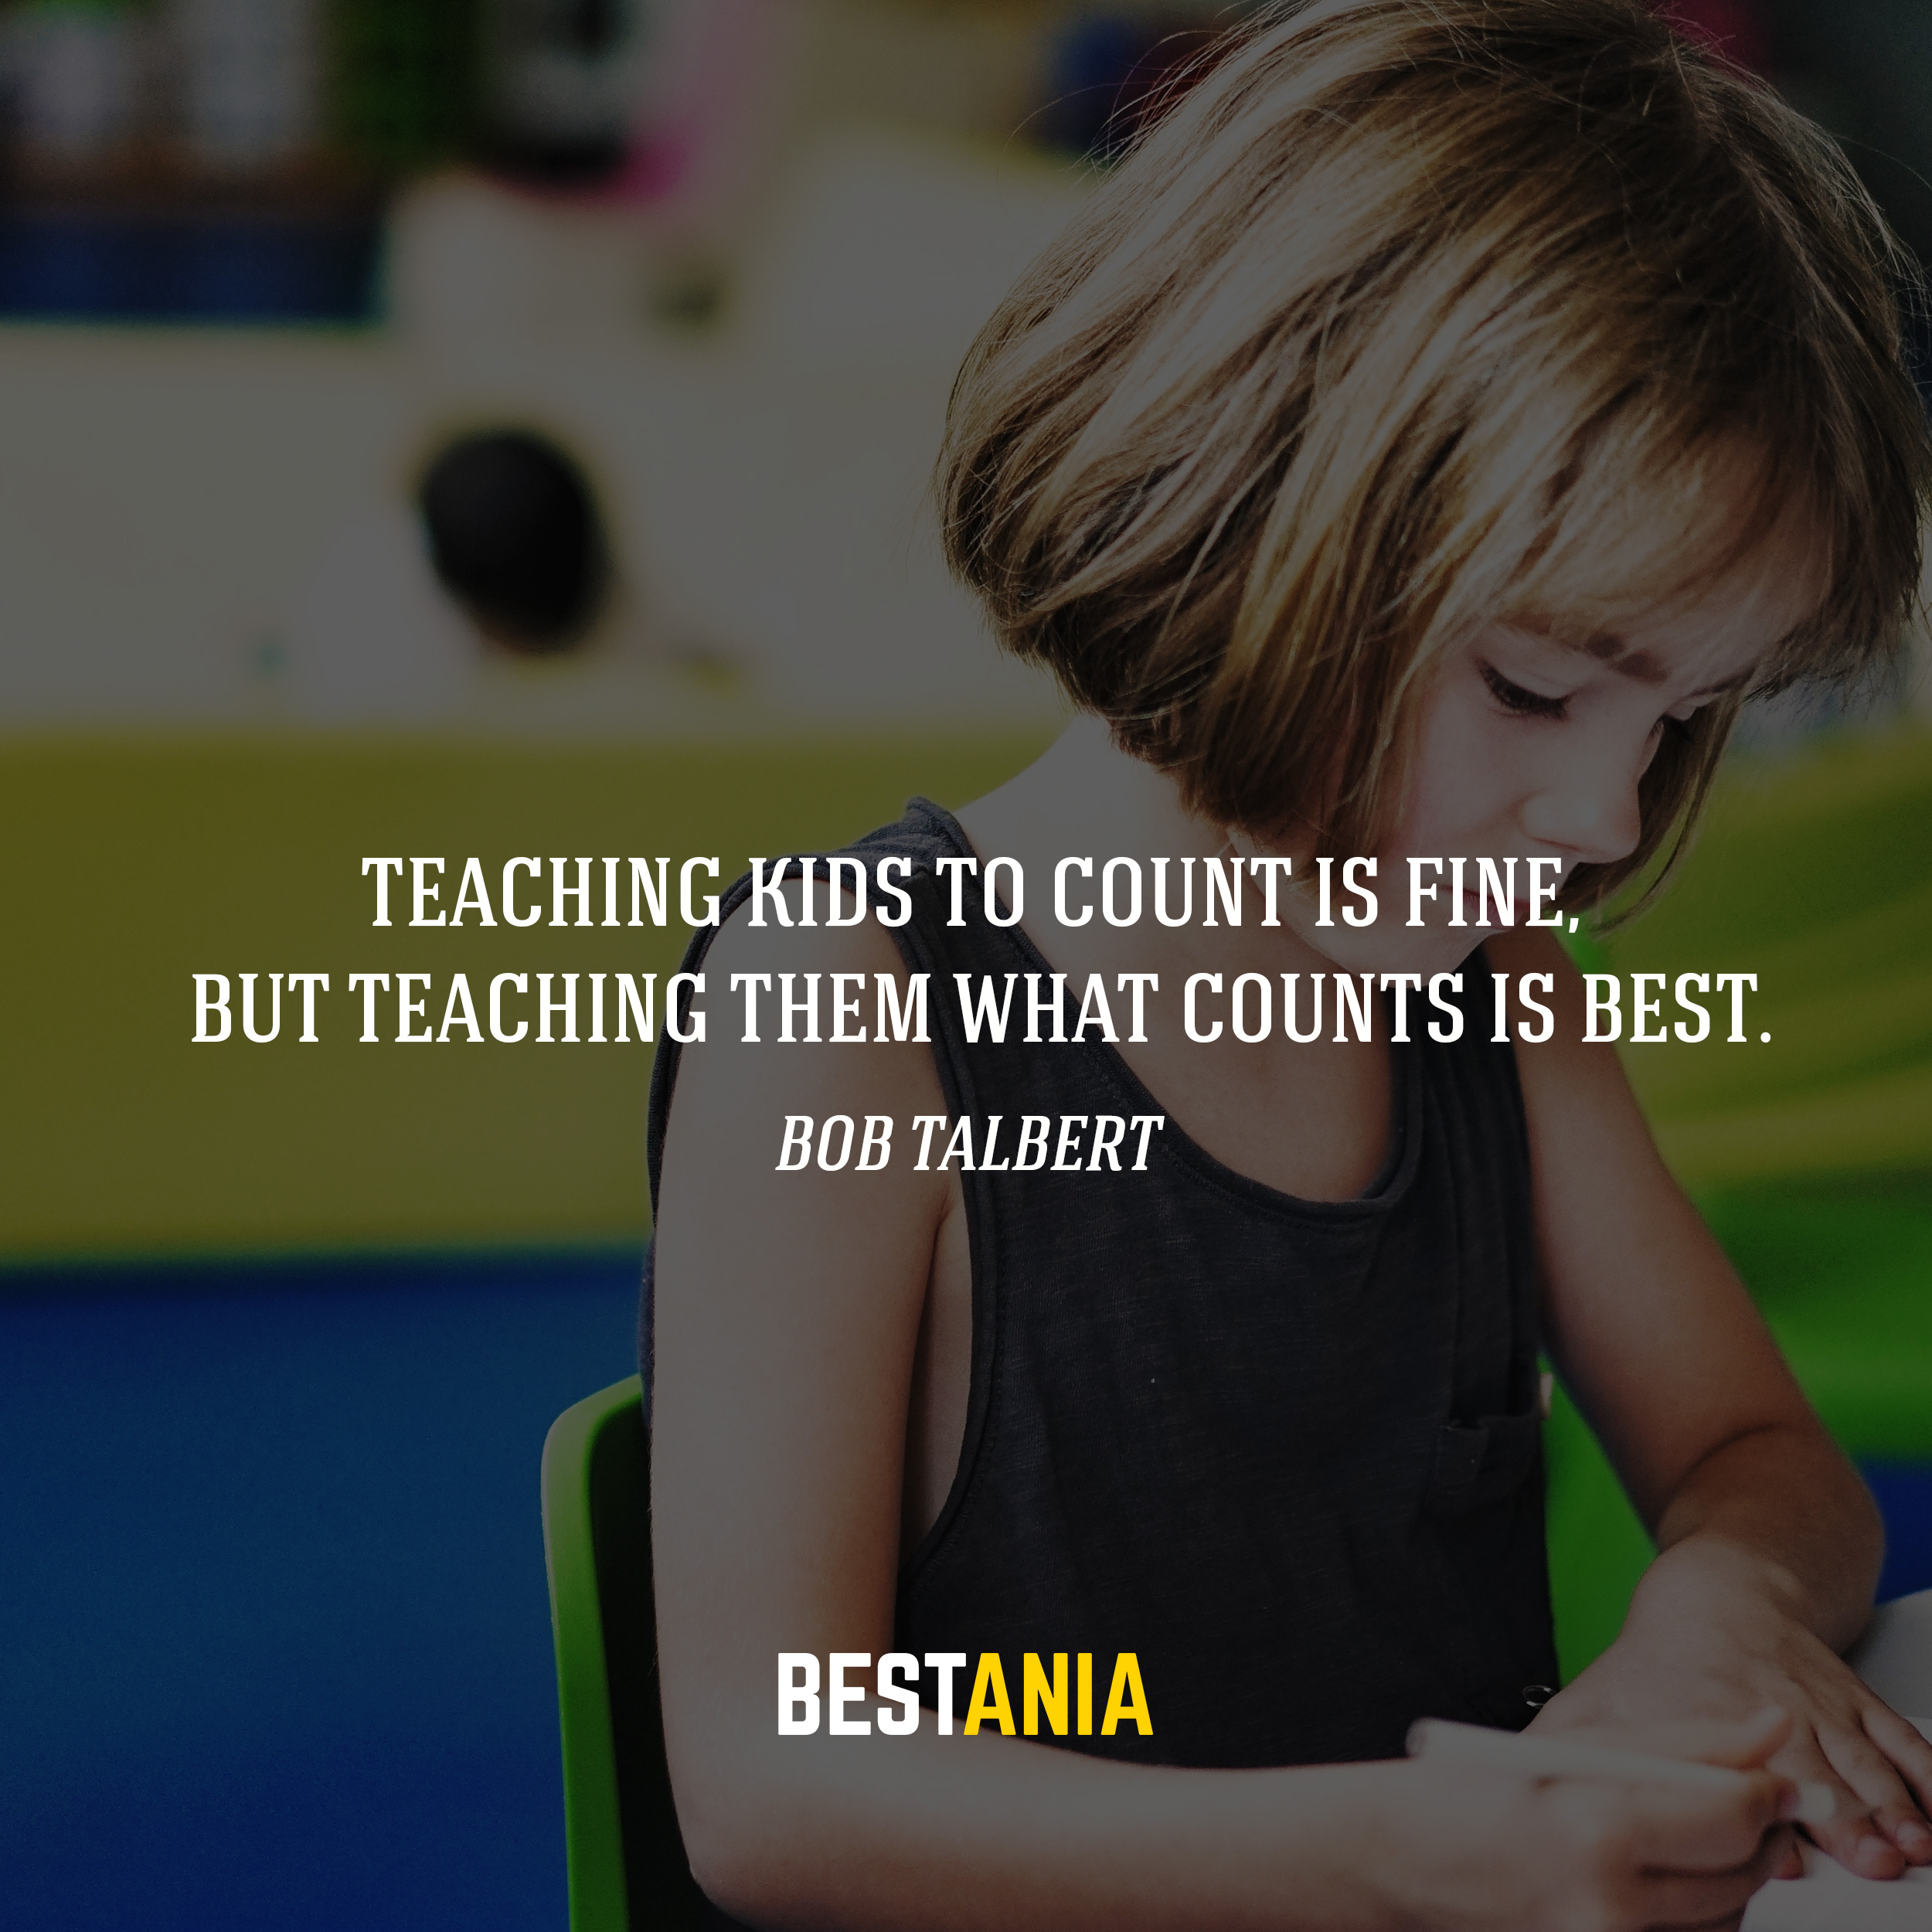 Teaching kids to count is fine, but teaching them what counts is best. -Bob Talbert